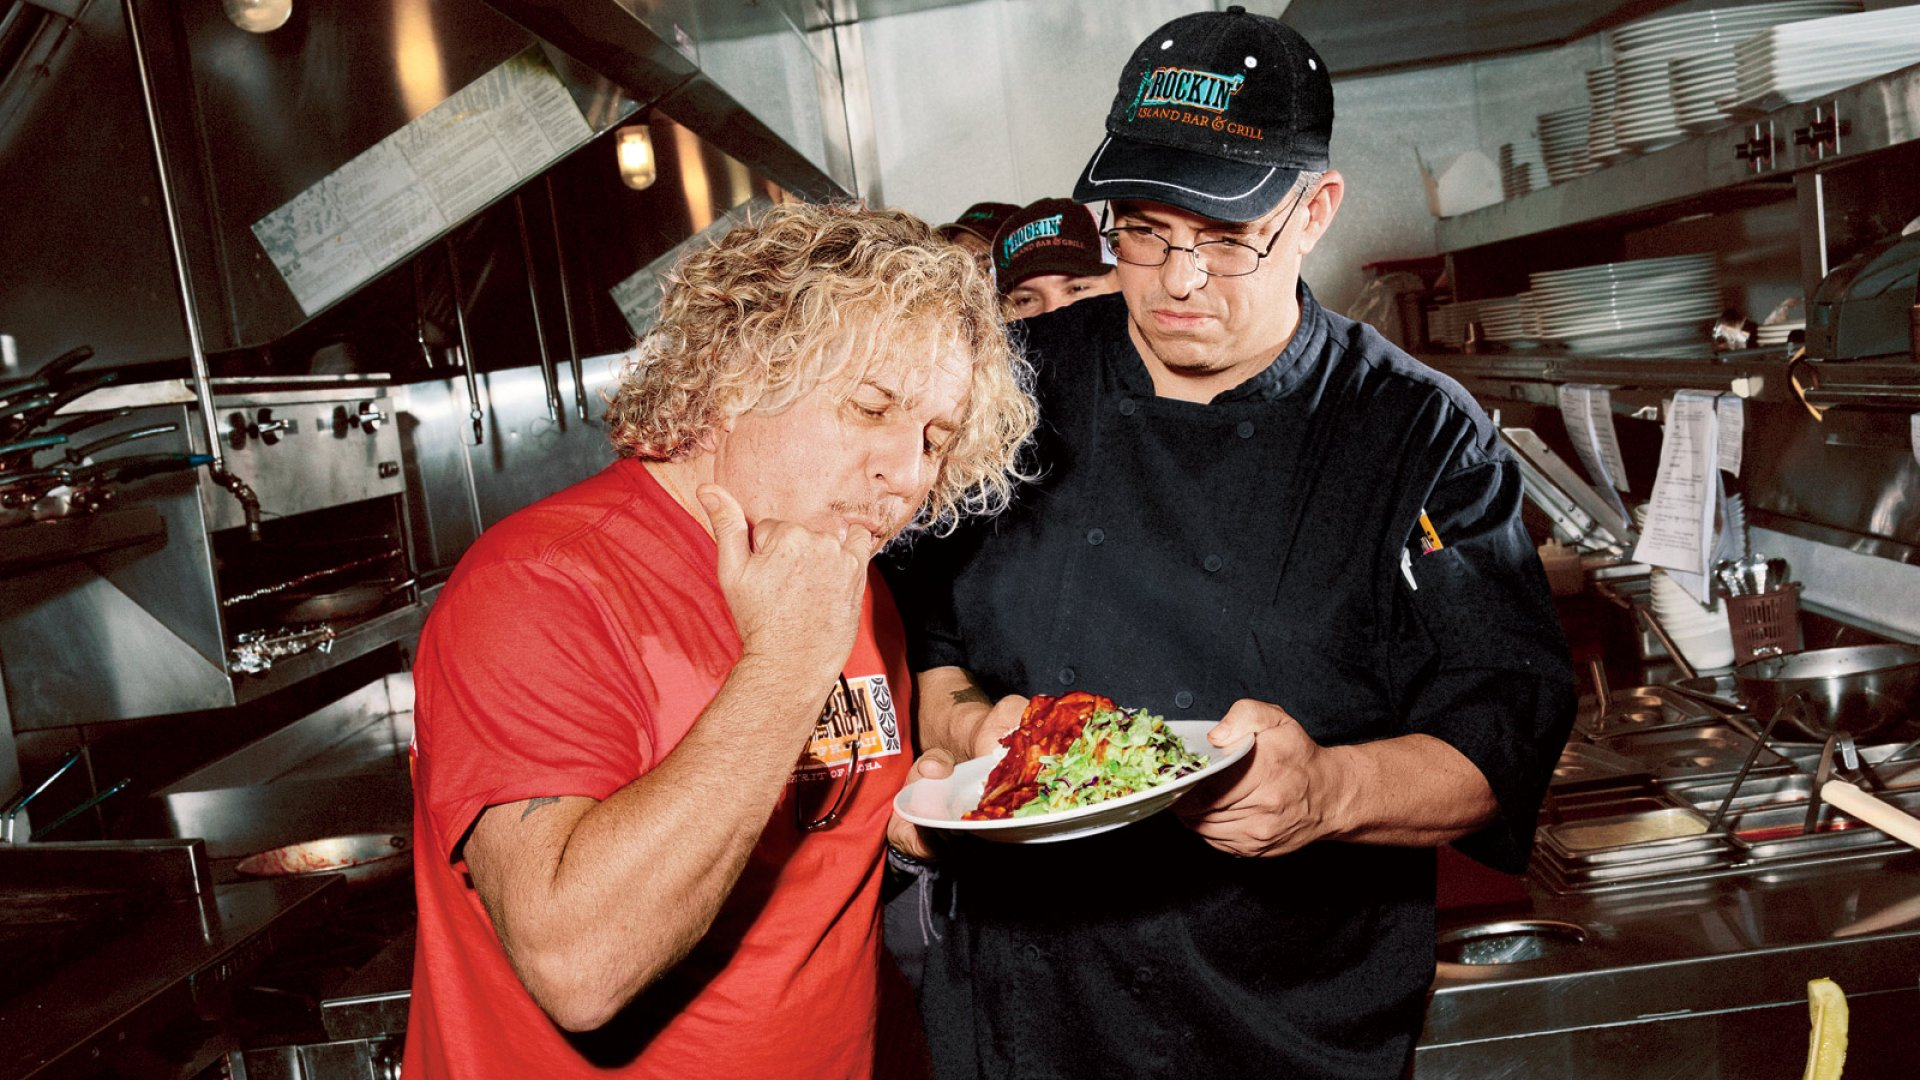 <b>PASS THE SALT</b><br>